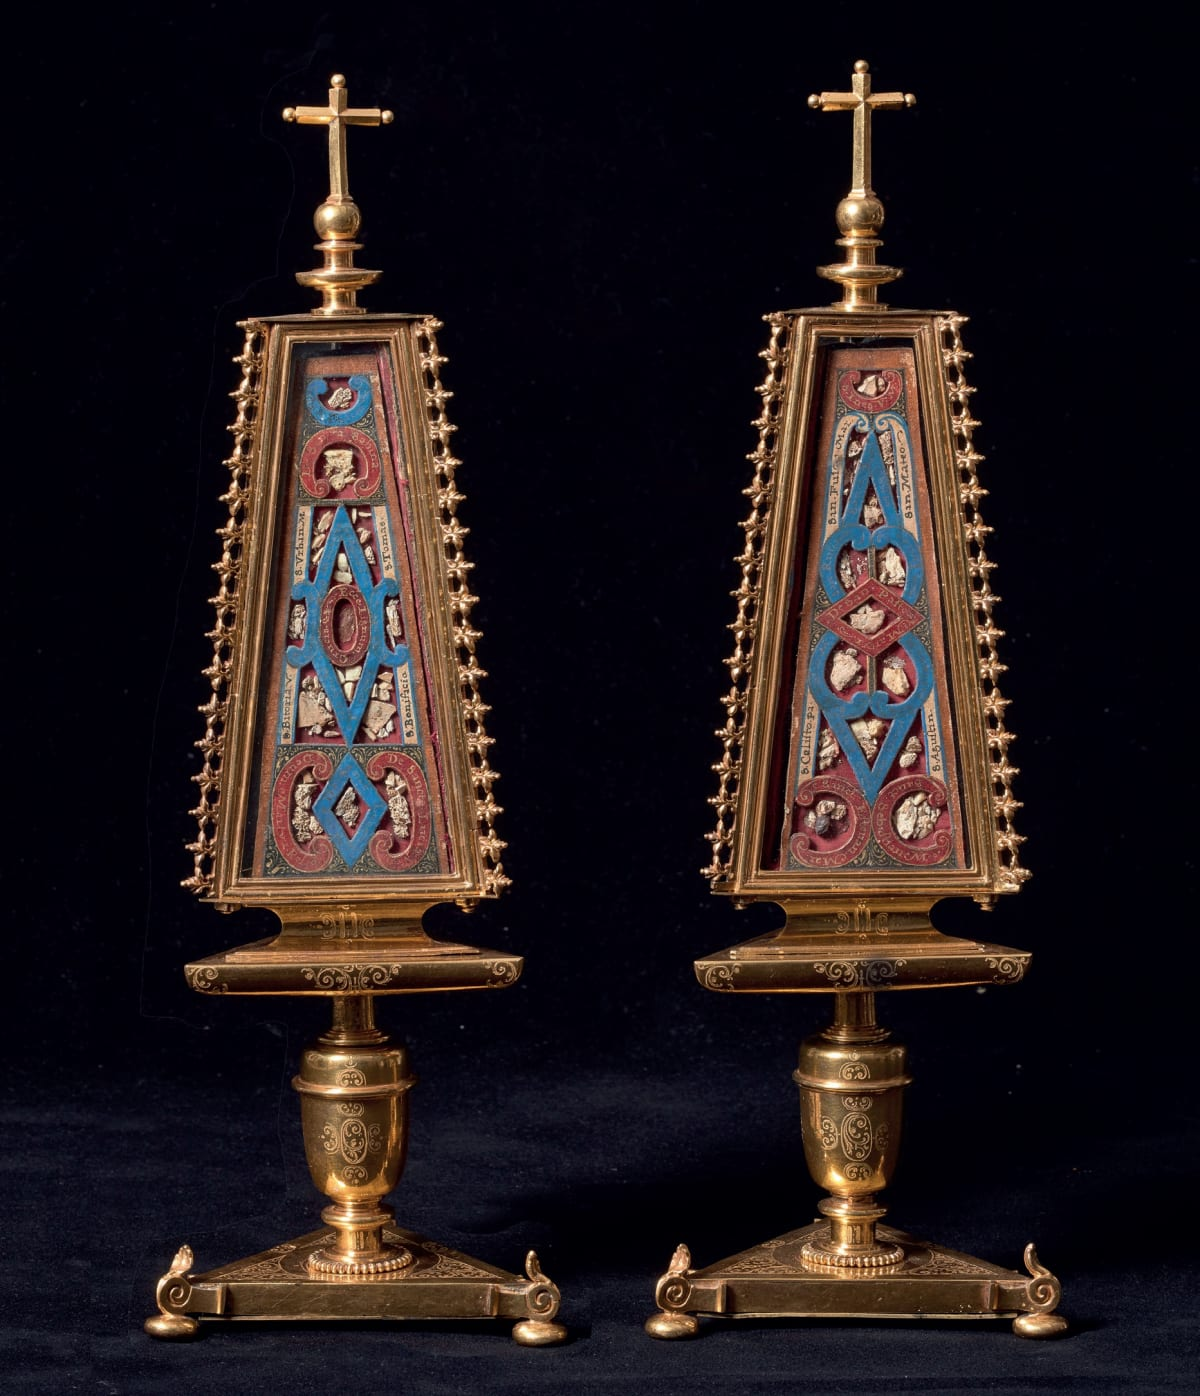 Anonymous from Madrid, Pair of reliquaries, First quarter of the 17th century